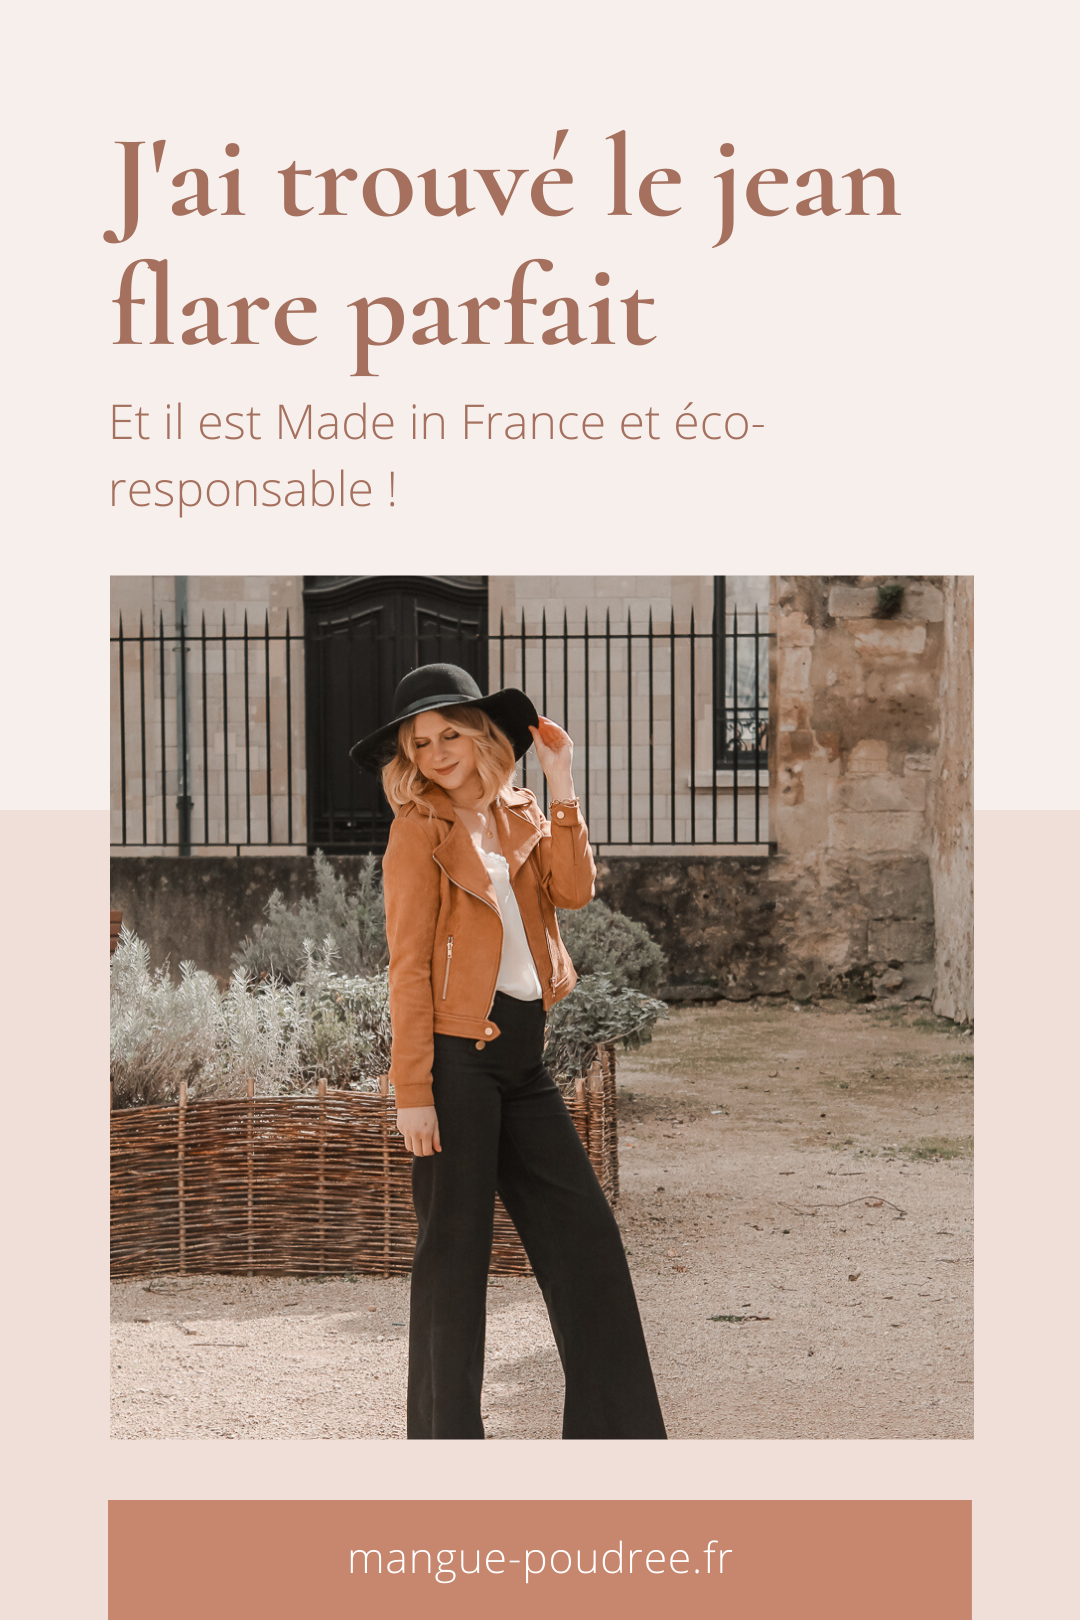 Avis Koshka Mashka - comment porter le jean flare look - Blog Mangue Poudrée - Blog mode et lifestyle Reims Paris Influenceuse - Pinterest - 1